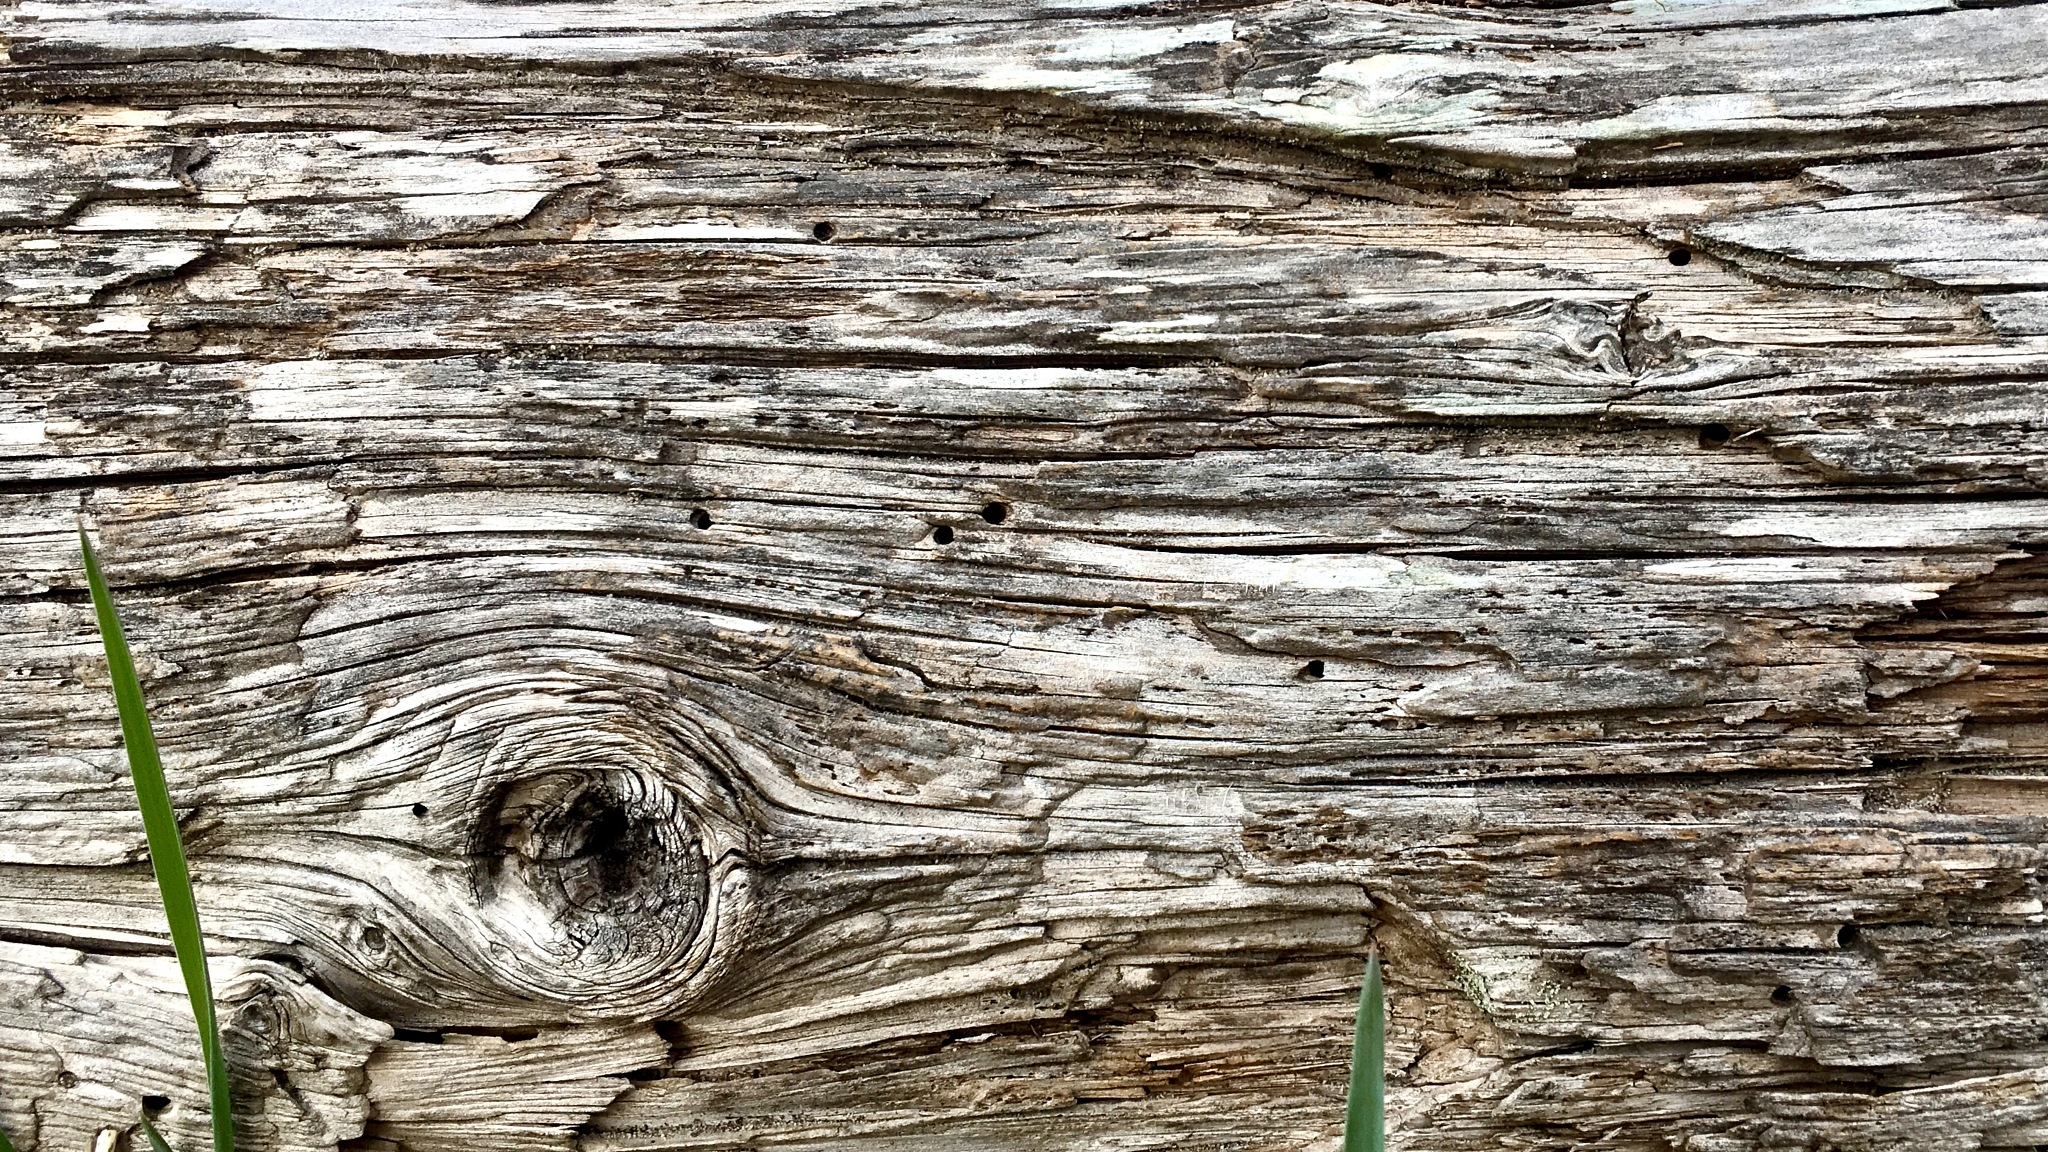 Textures in Nature by  Charles J. Walbaum